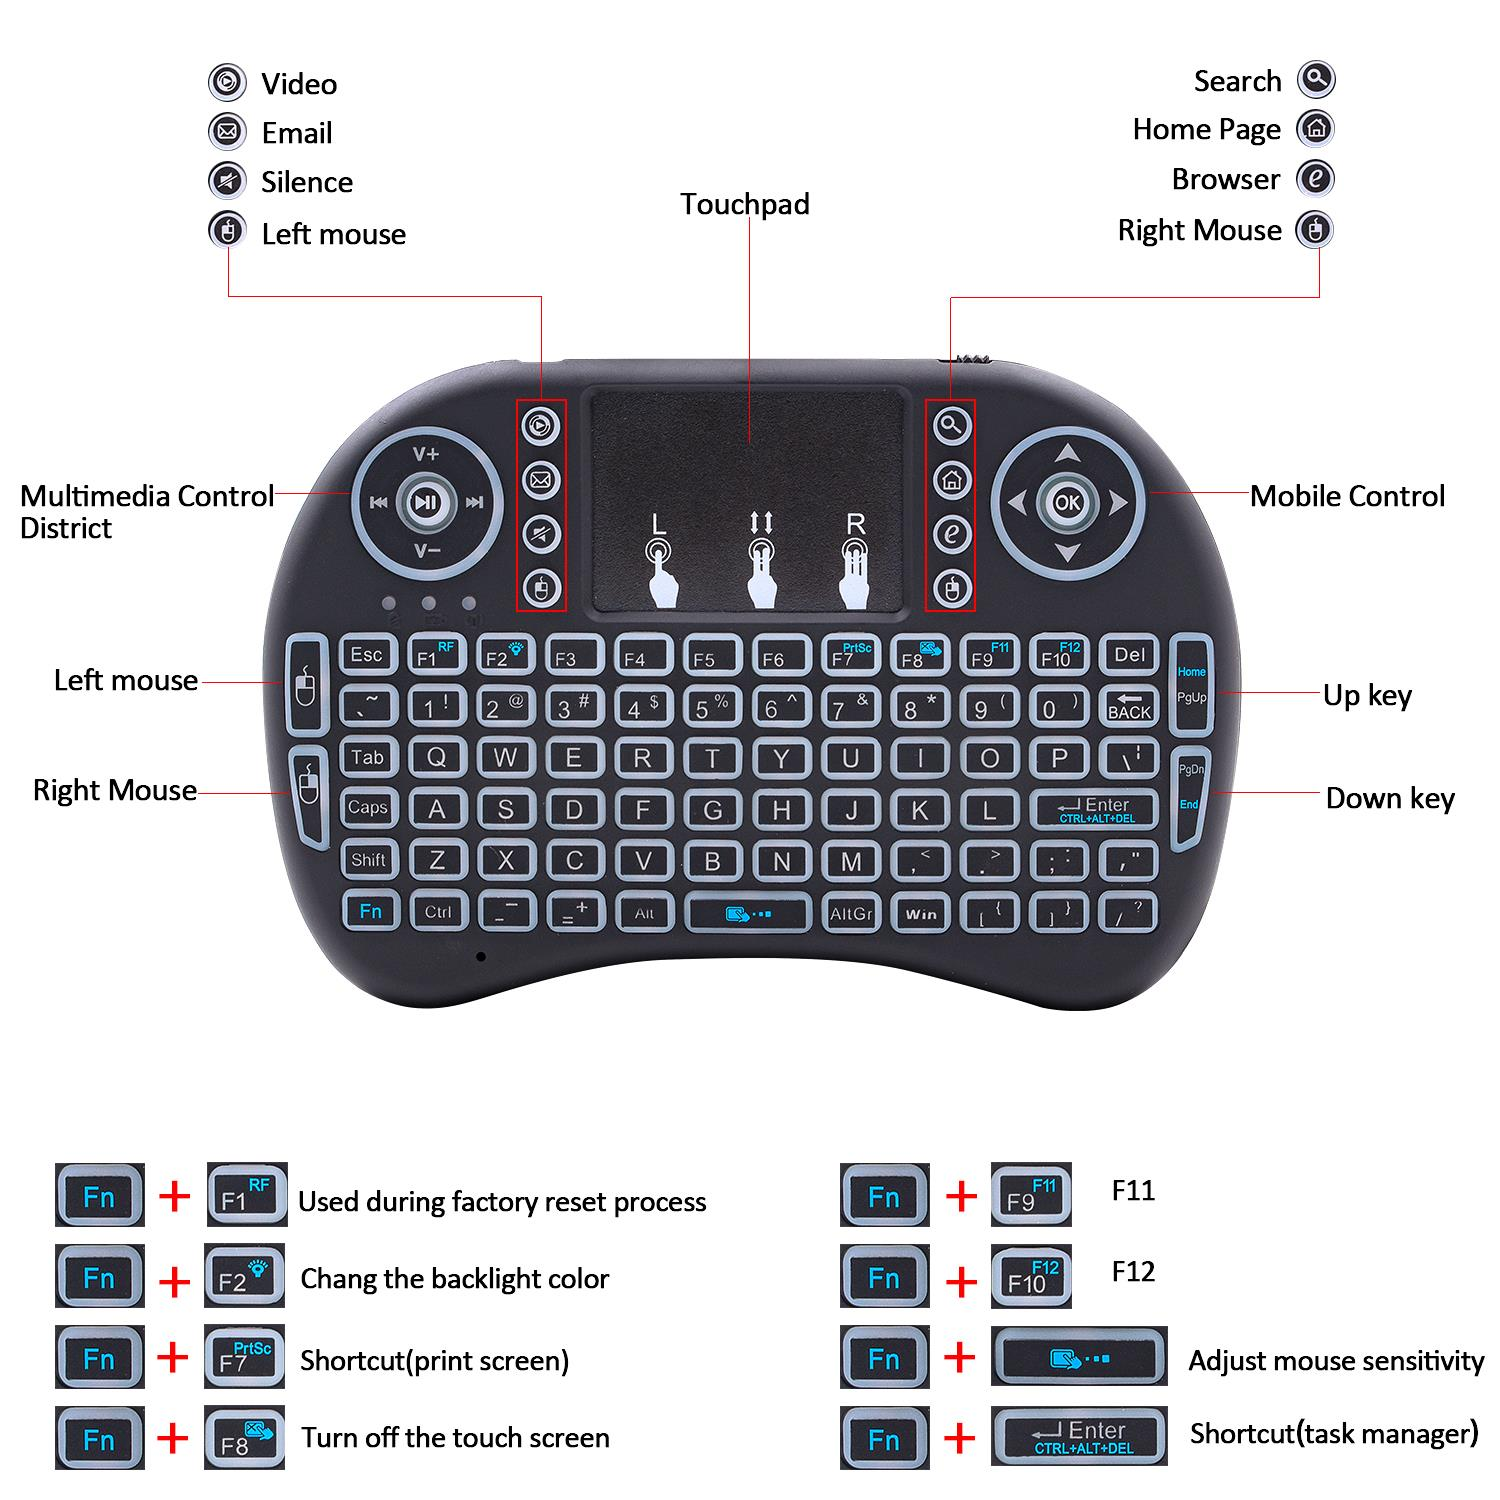 Black Wireless Mini Keyboard /& Mouse Easy Remote Control for Samsung JVC LT-43C770 43 Smart TV